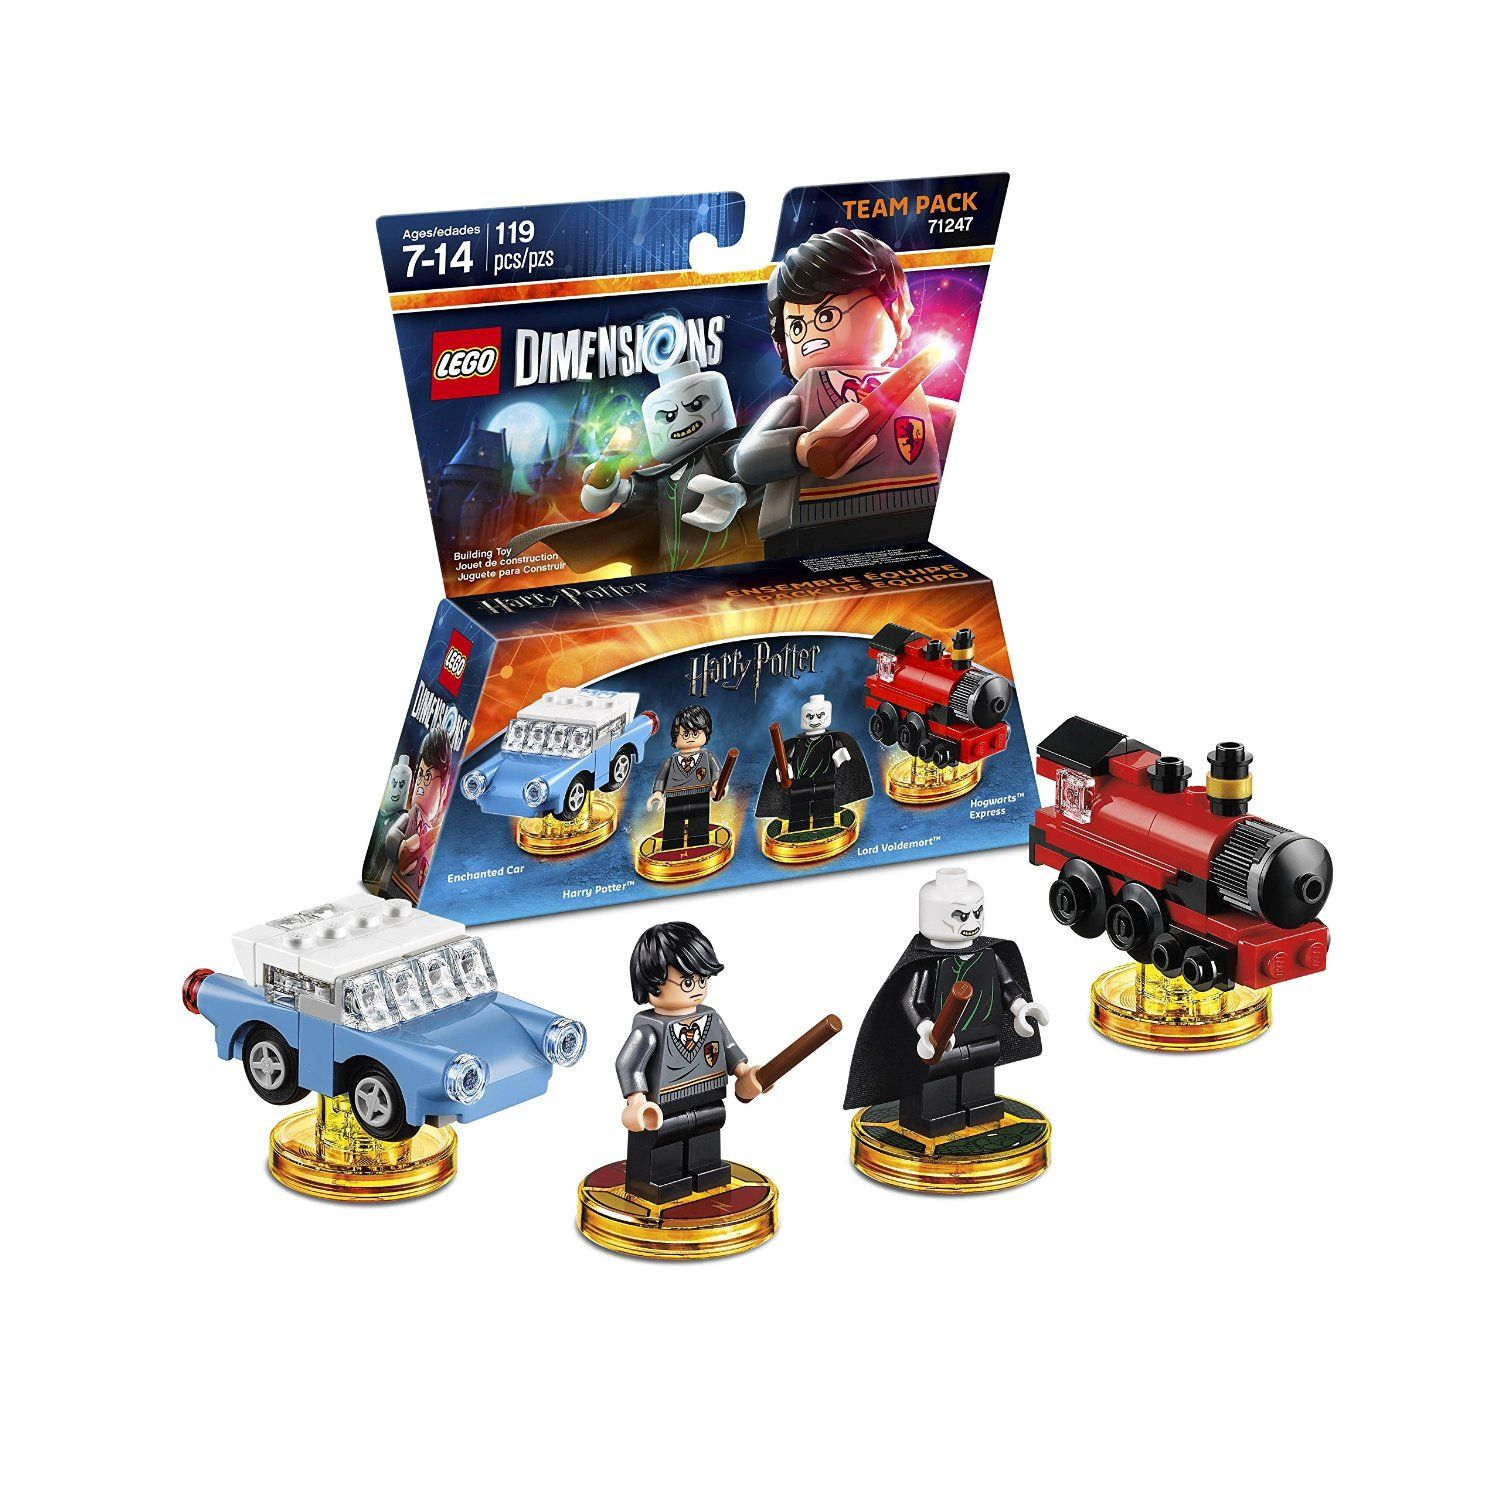 2bb343c12b63ac68dee81b991d4f0d47 lego dimensions, harry potter team pack s www amazon com LEGO Dimensions Xbox One at gsmx.co